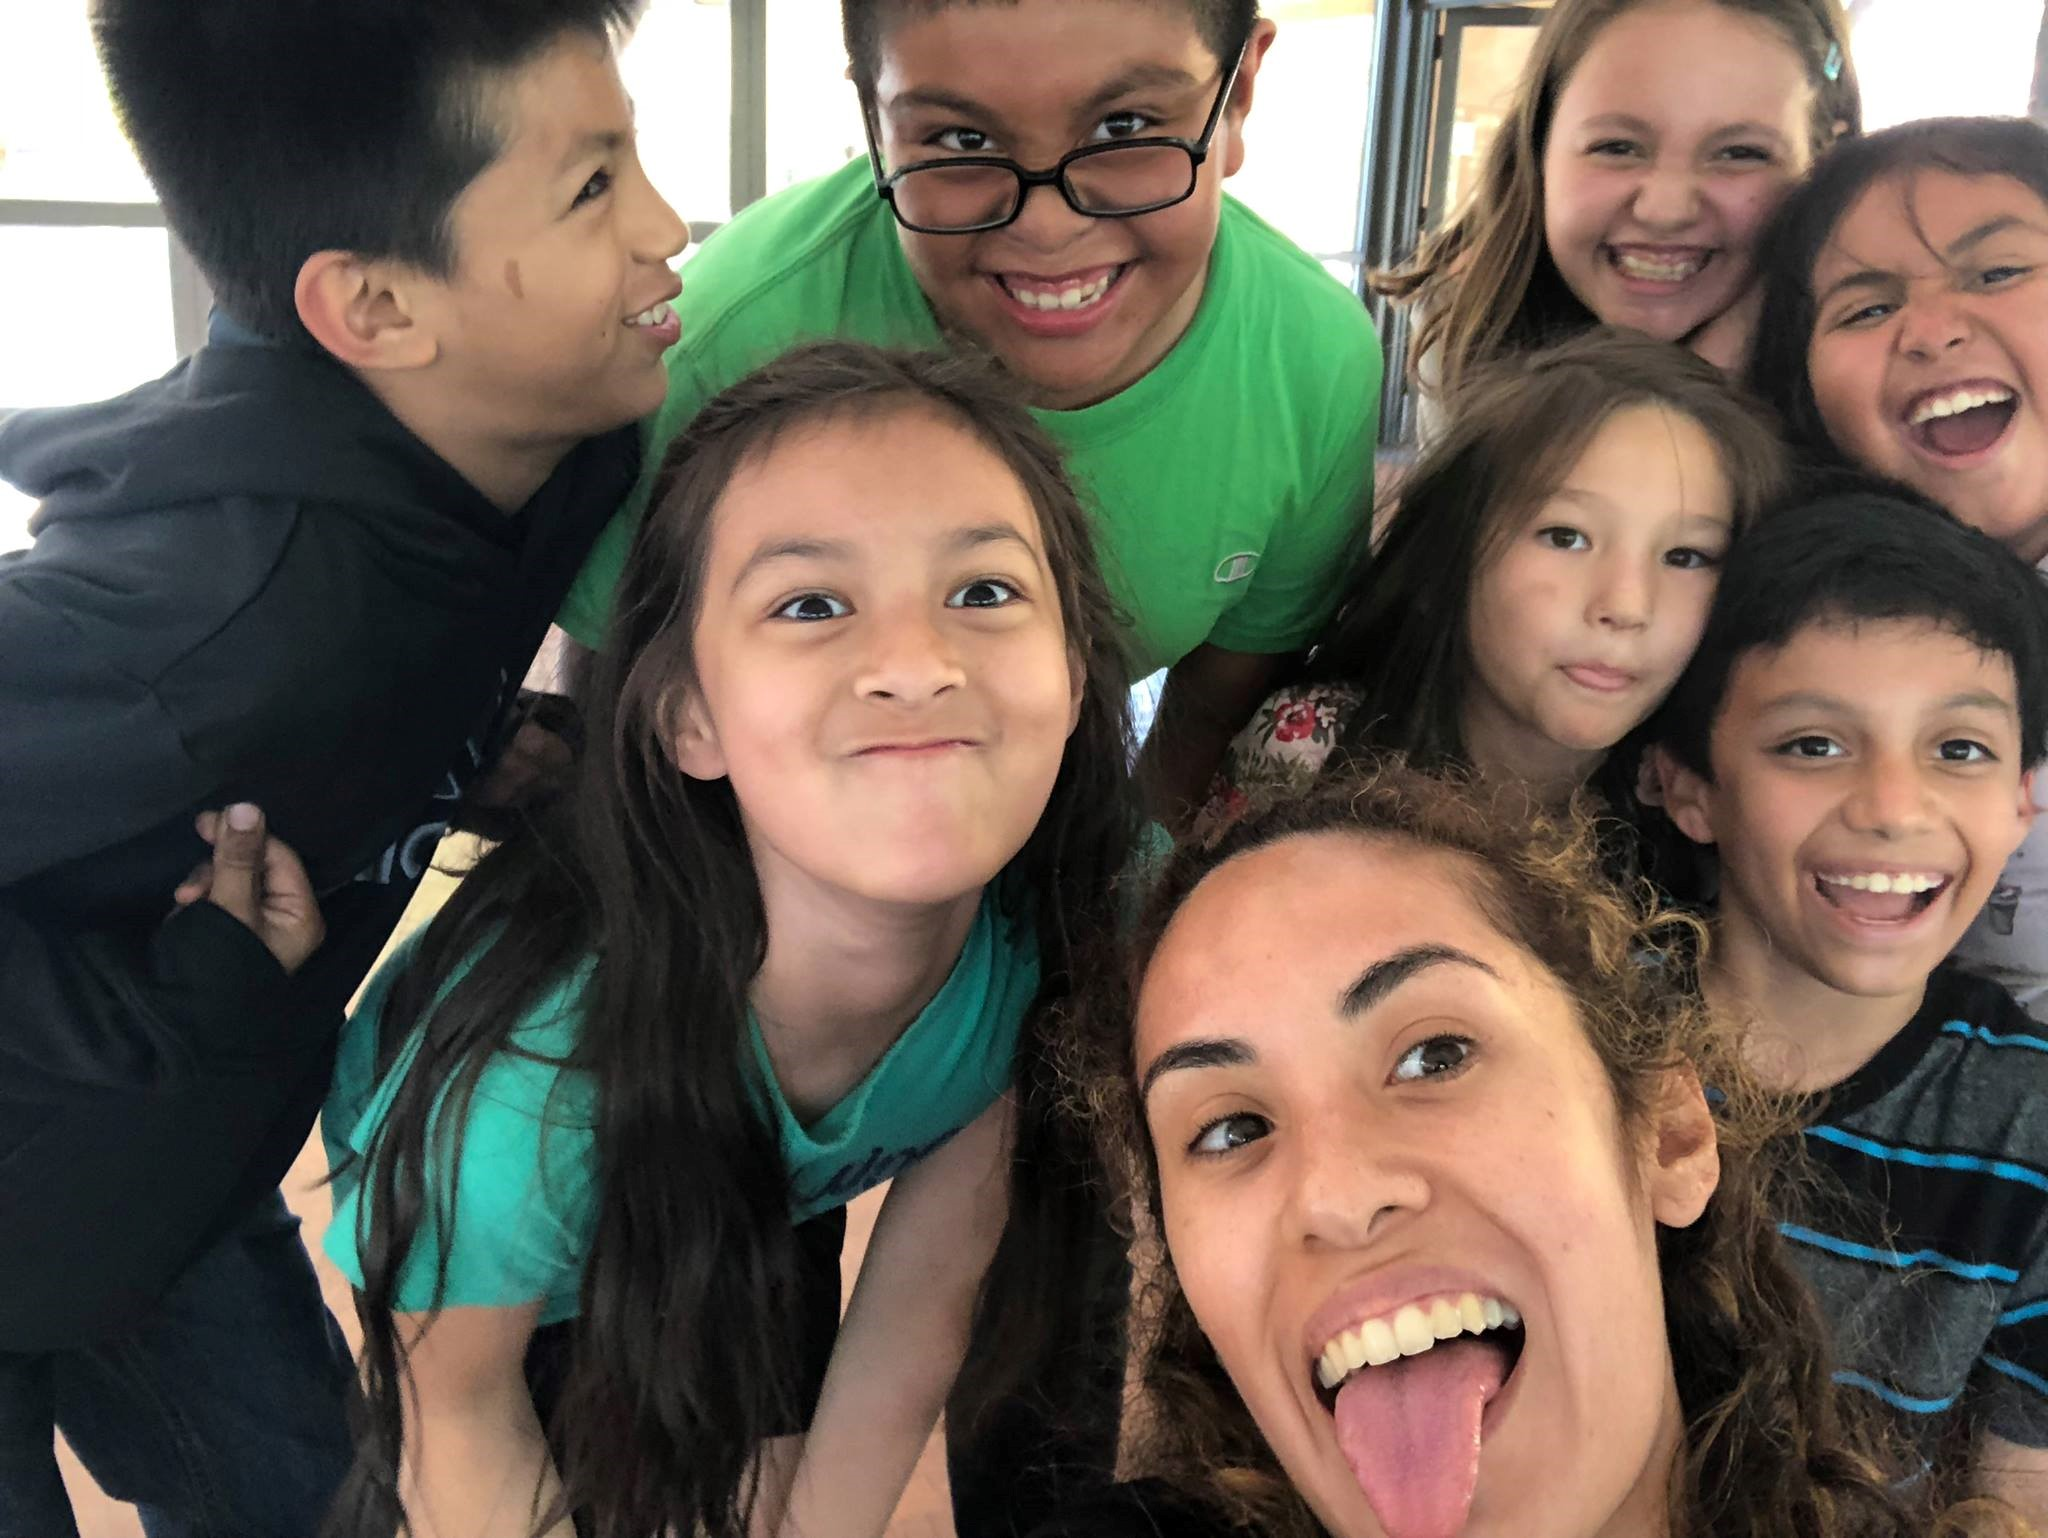 In the summer of 2018 we served 35 kids through the School of Arts and Culture Summer Camp. We provided modern/creative dance classes.